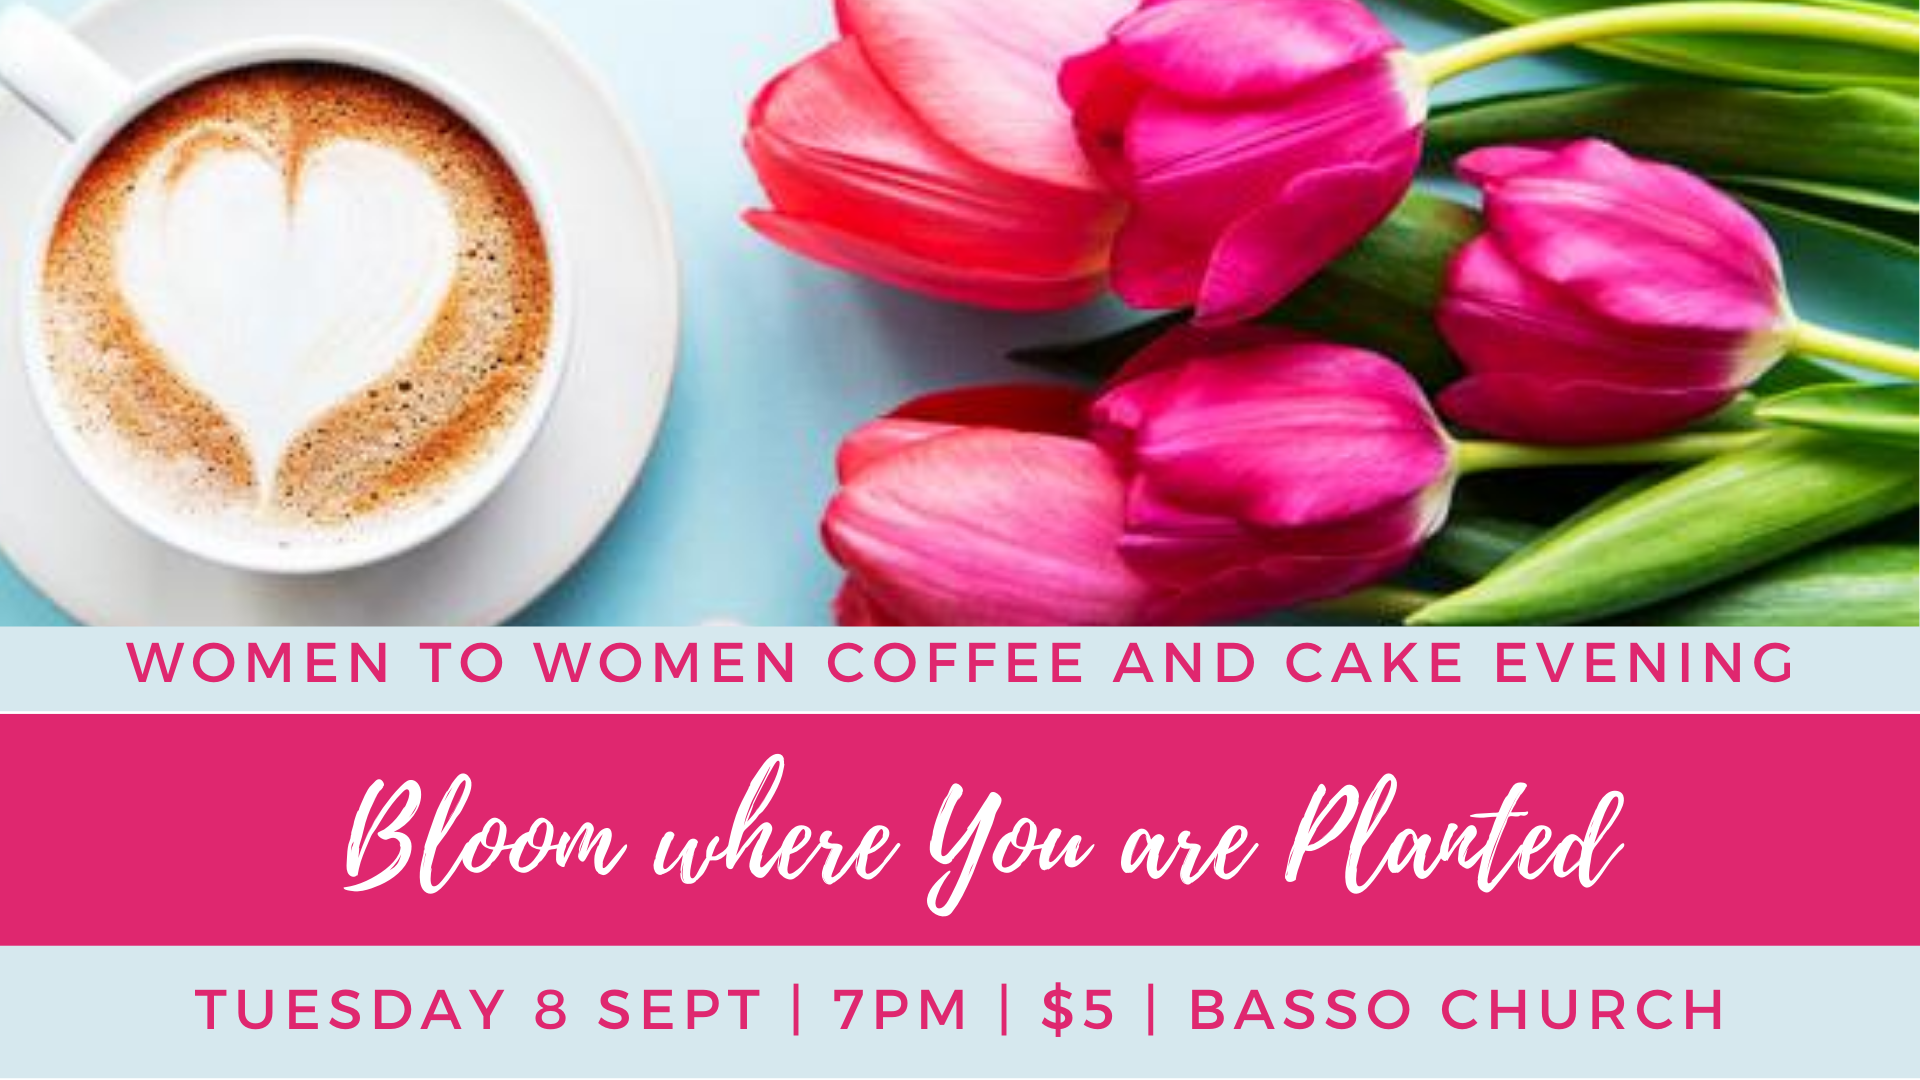 Women's Coffee and Cake Evening